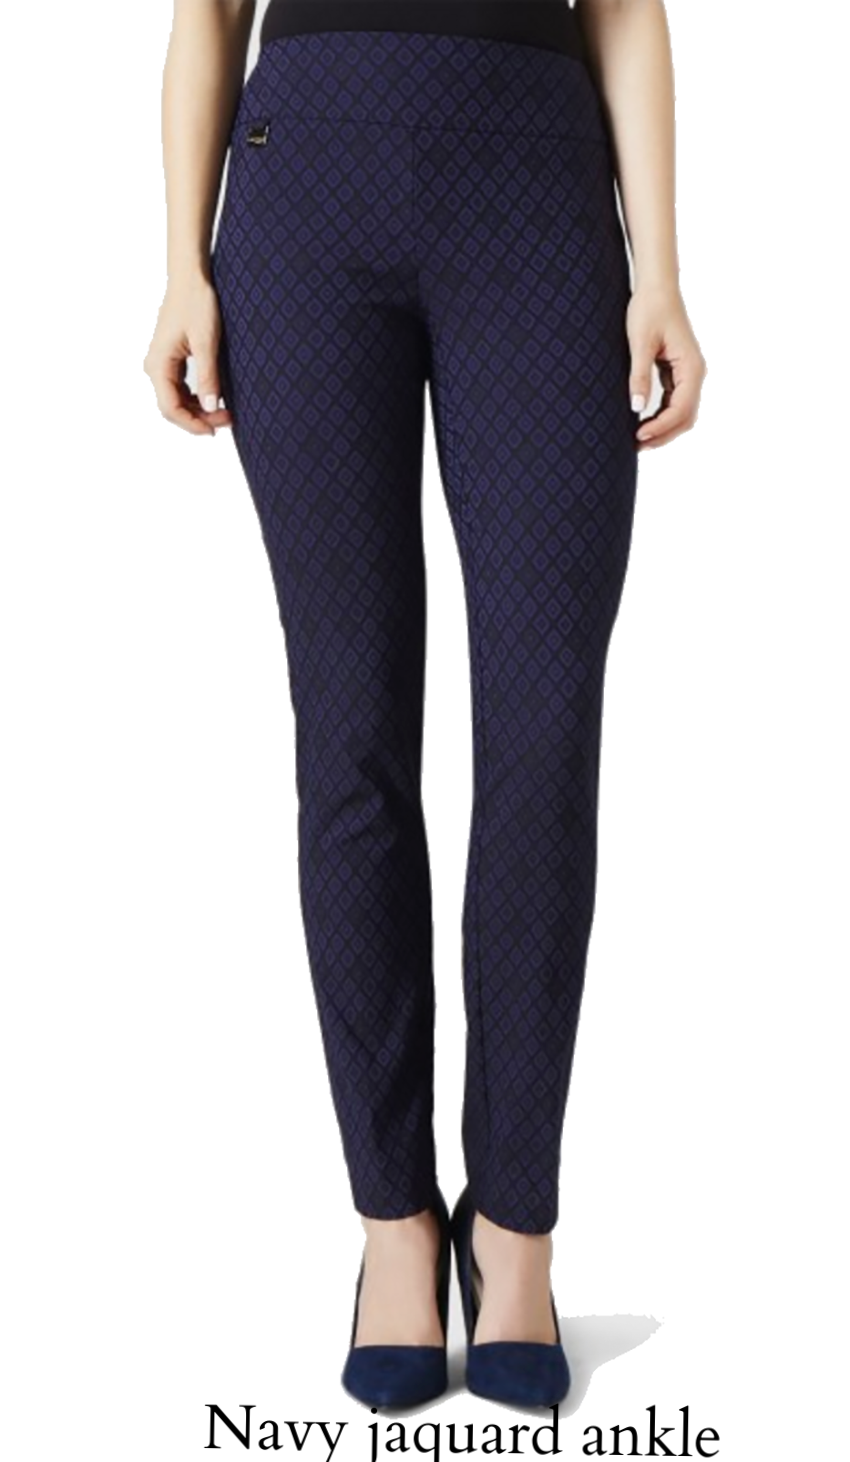 lisette navy texture 14401.png